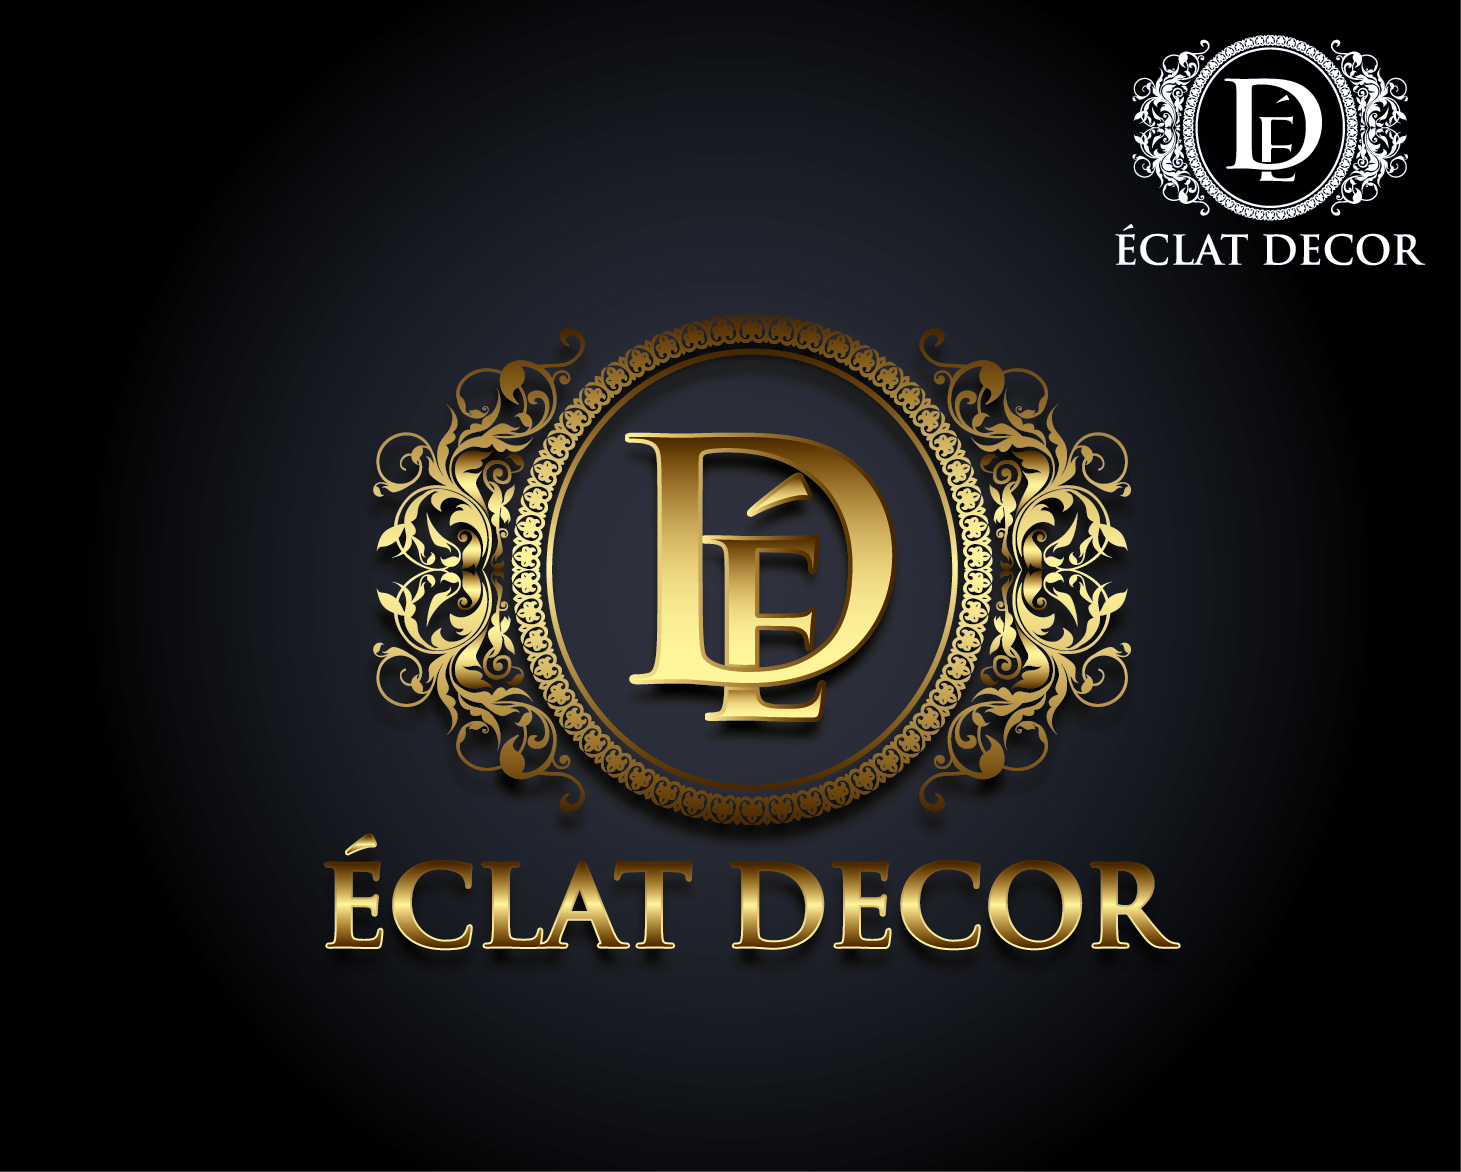 Logo Design by VENTSISLAV KOVACHEV - Entry No. 31 in the Logo Design Contest Imaginative Logo Design for Éclat Decor.